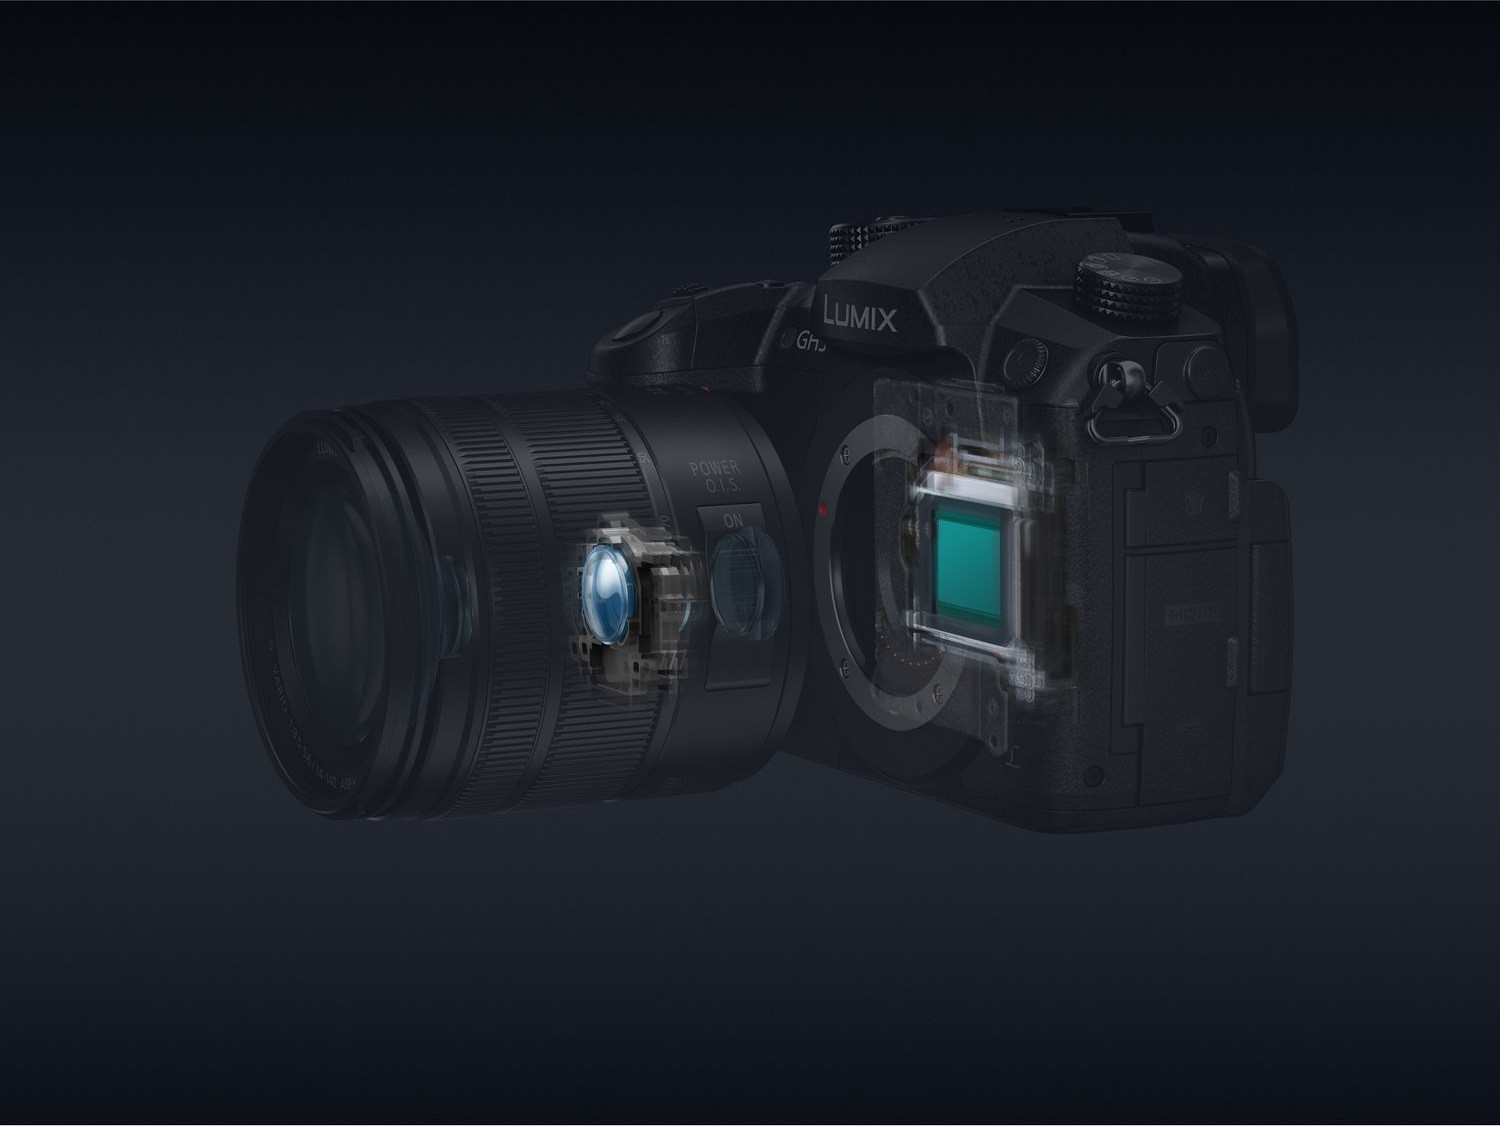 Download Firmware 1 1 for Panasonic's New DC-GH5 DSLM Camera